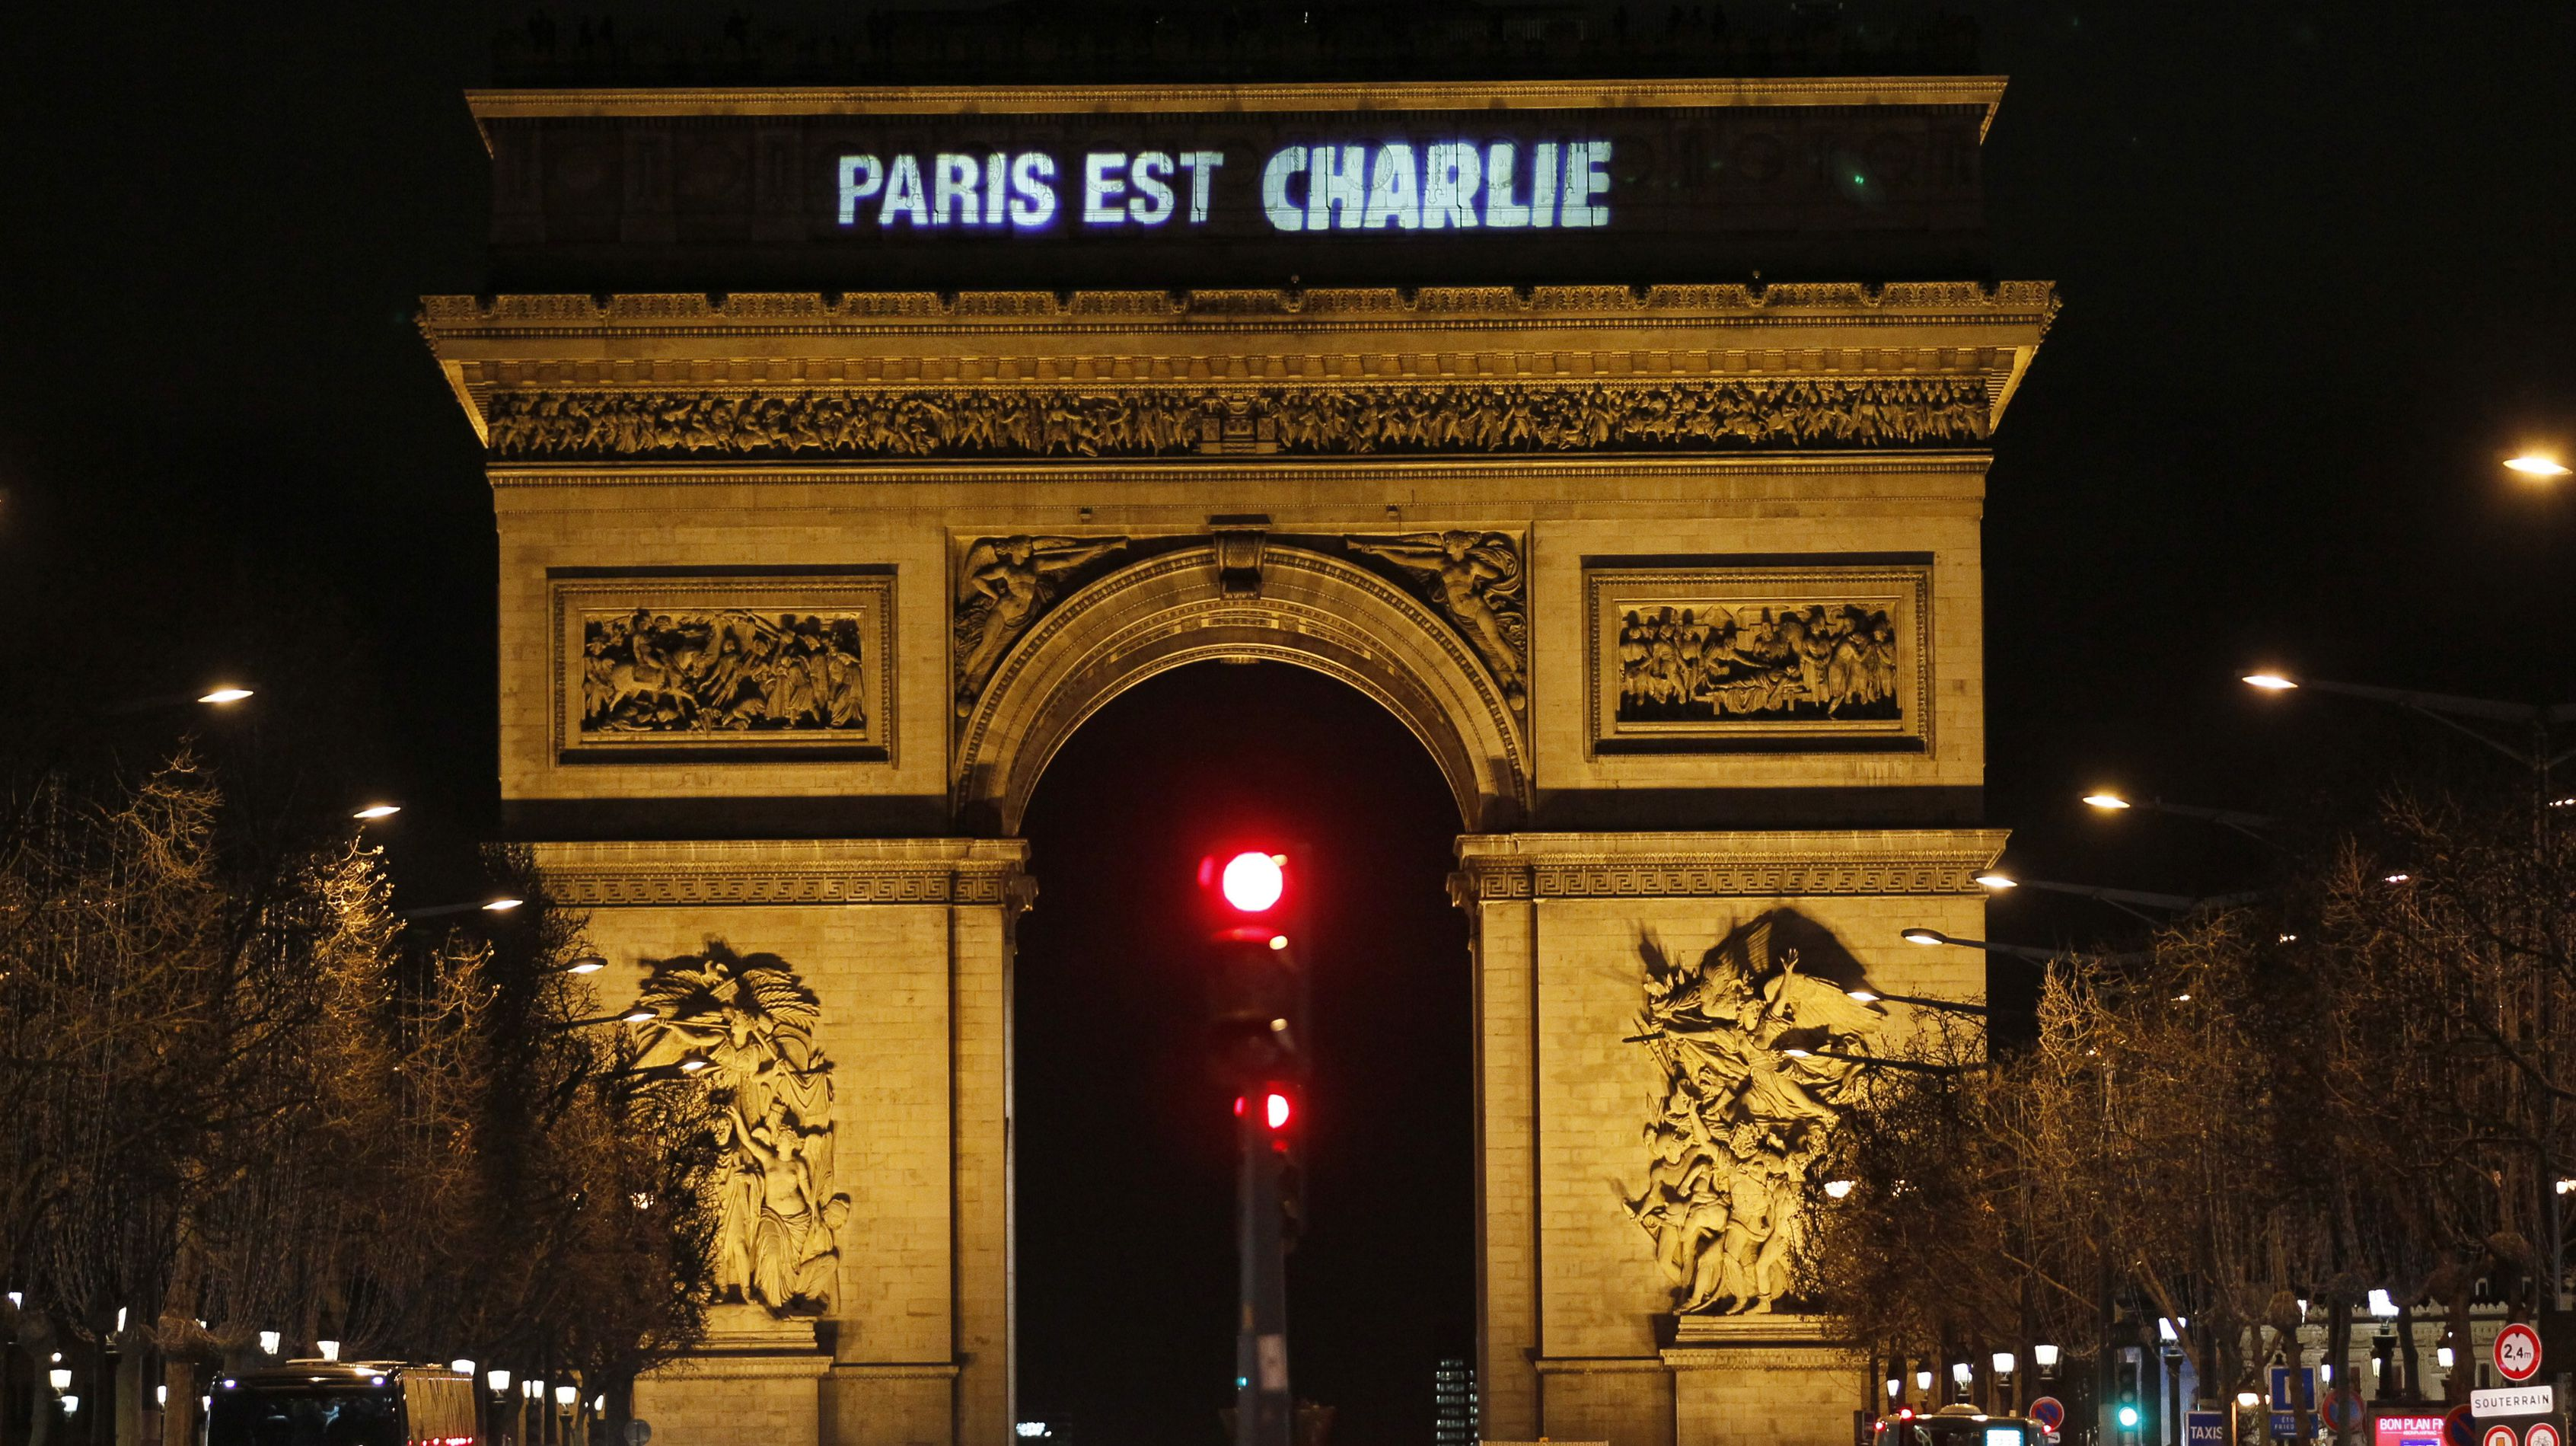 """The message """"Paris is Charlie"""" is projected on the Arc de Triomphe in Paris January 9, 2015, in tribute to the victims following Wednesday's deadly attack at the Paris offices of weekly satirical newspaper Charlie Hebdo by two masked gunmen who shouted Islamist slogans. REUTERS/Youssef Boudlal (FRANCE - Tags: CRIME LAW MEDIA) - RTR4KS0J"""